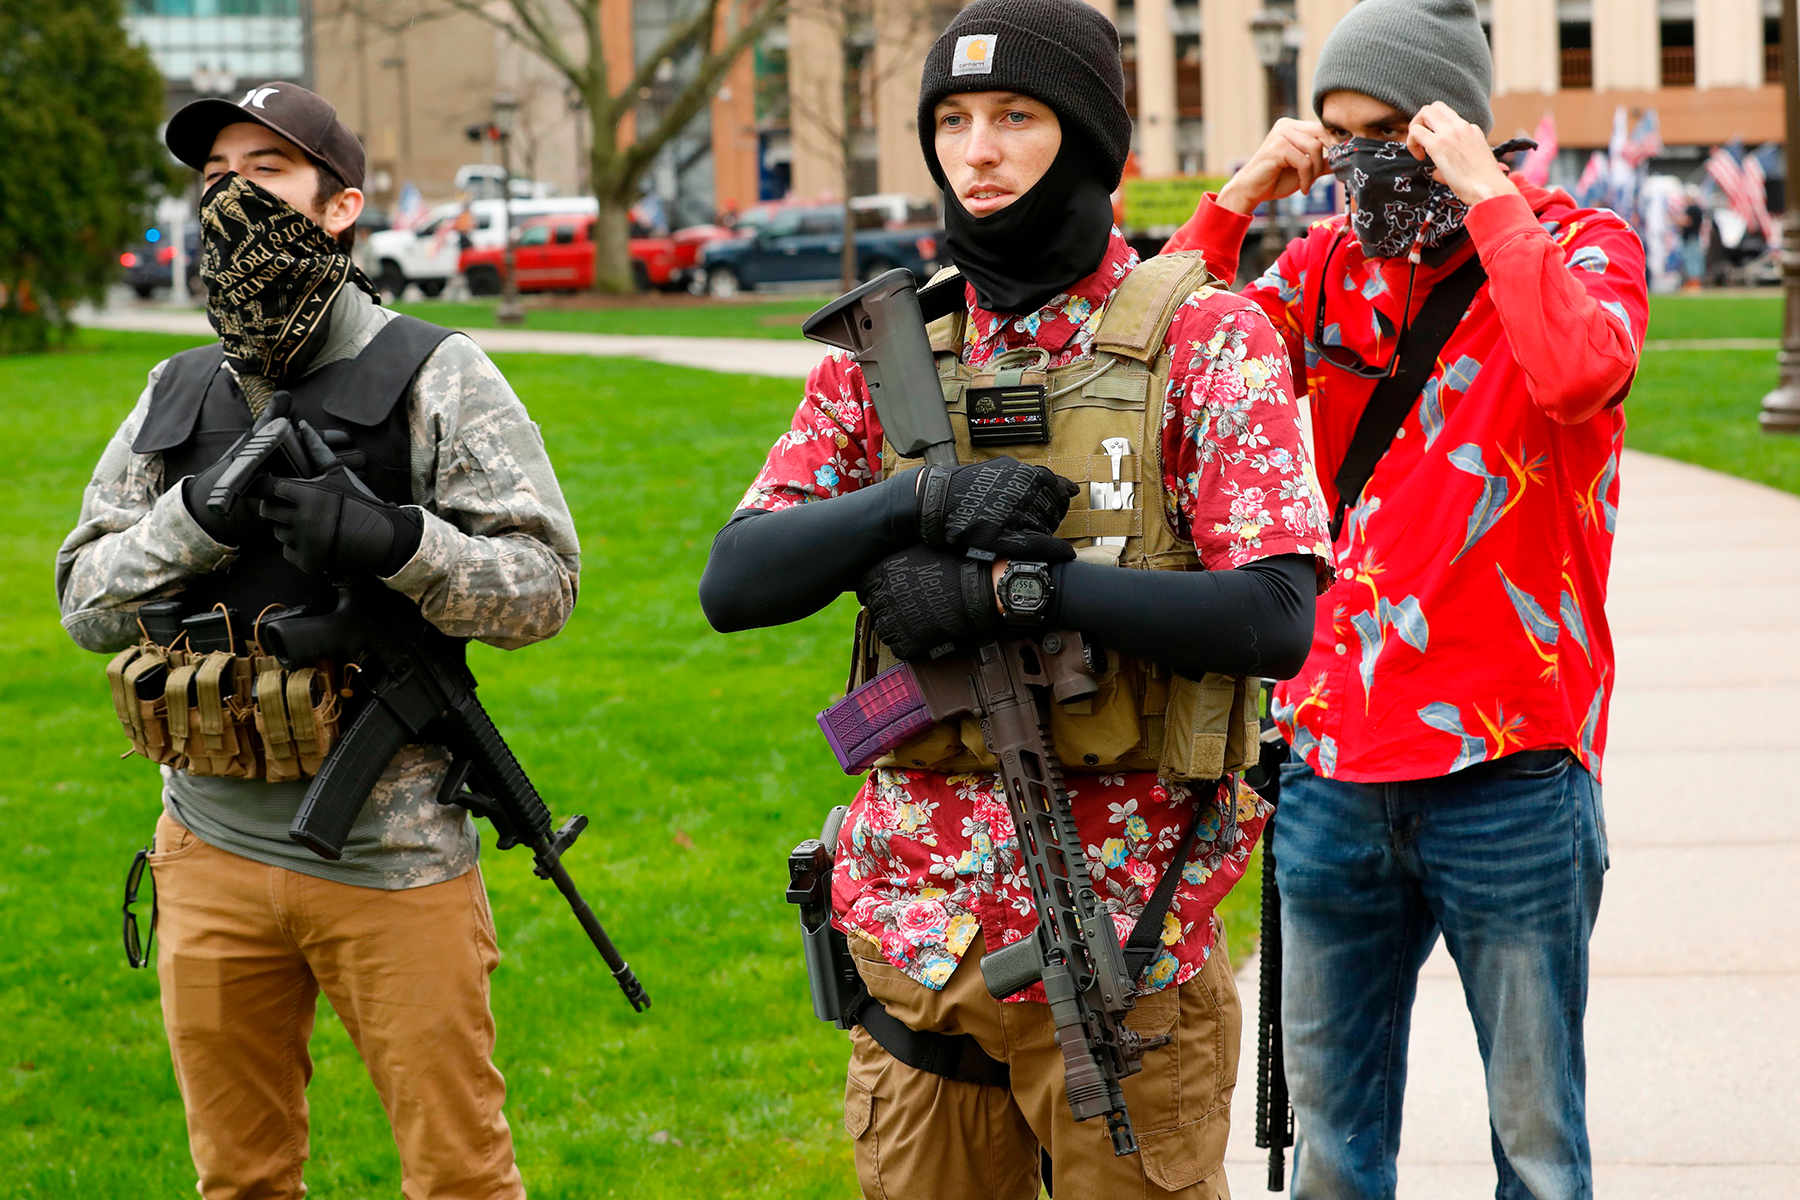 """Armed protesters provide security as demonstrators take part in an """"American Patriot Rally,"""" organized on April 30, 2020, by Michigan United for Liberty on the steps of the Michigan State Capitol in Lansing, demanding the reopening of businesses. - Michigan's stay-at-home order declared by Democratic Governor Gretchen Whitmer is set to expire after May 15. (Photo by JEFF KOWALSKY / AFP) (Photo by JEFF KOWALSKY/AFP via Getty Images)"""